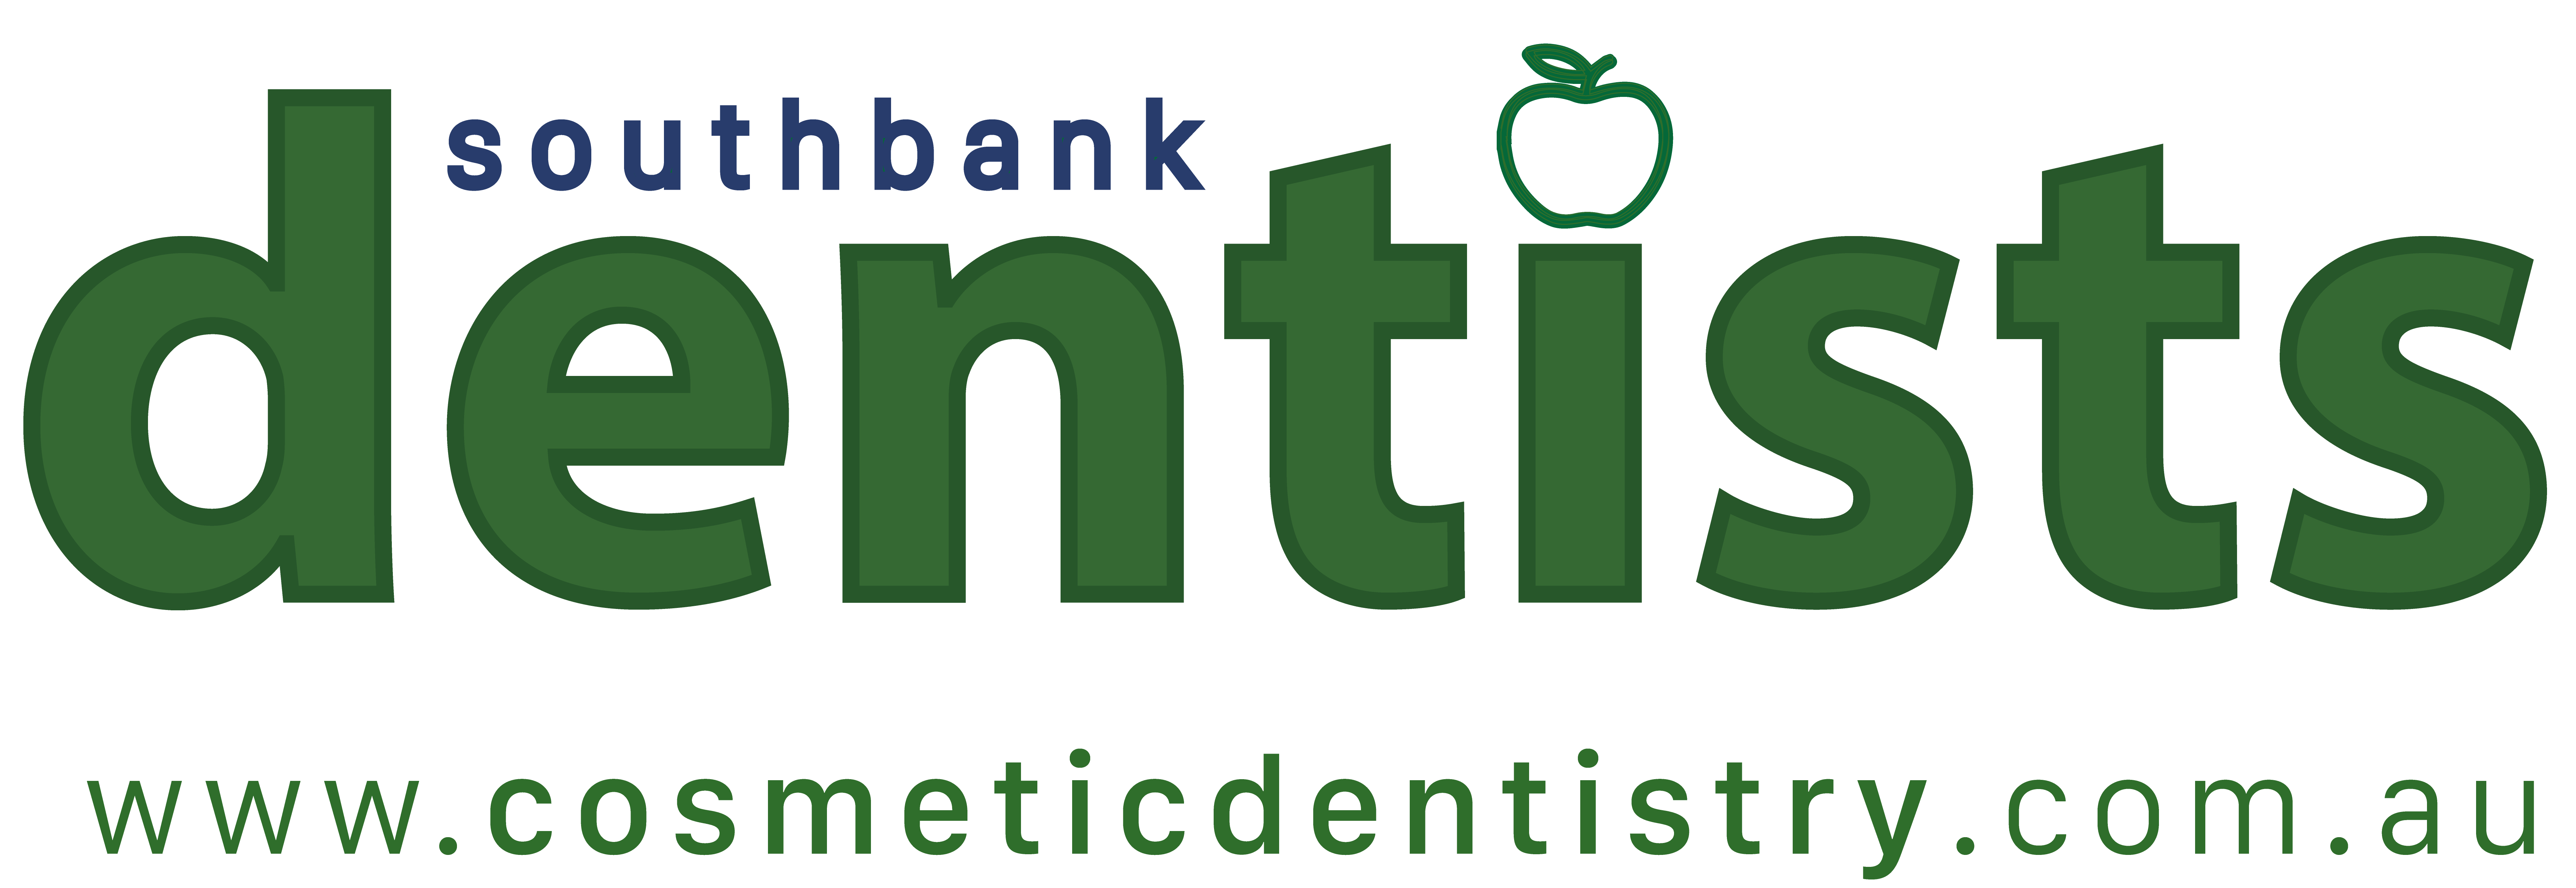 South Bank Dentists | www.cosmeticdentistry.com.au | The Best Dentists in Brisbane